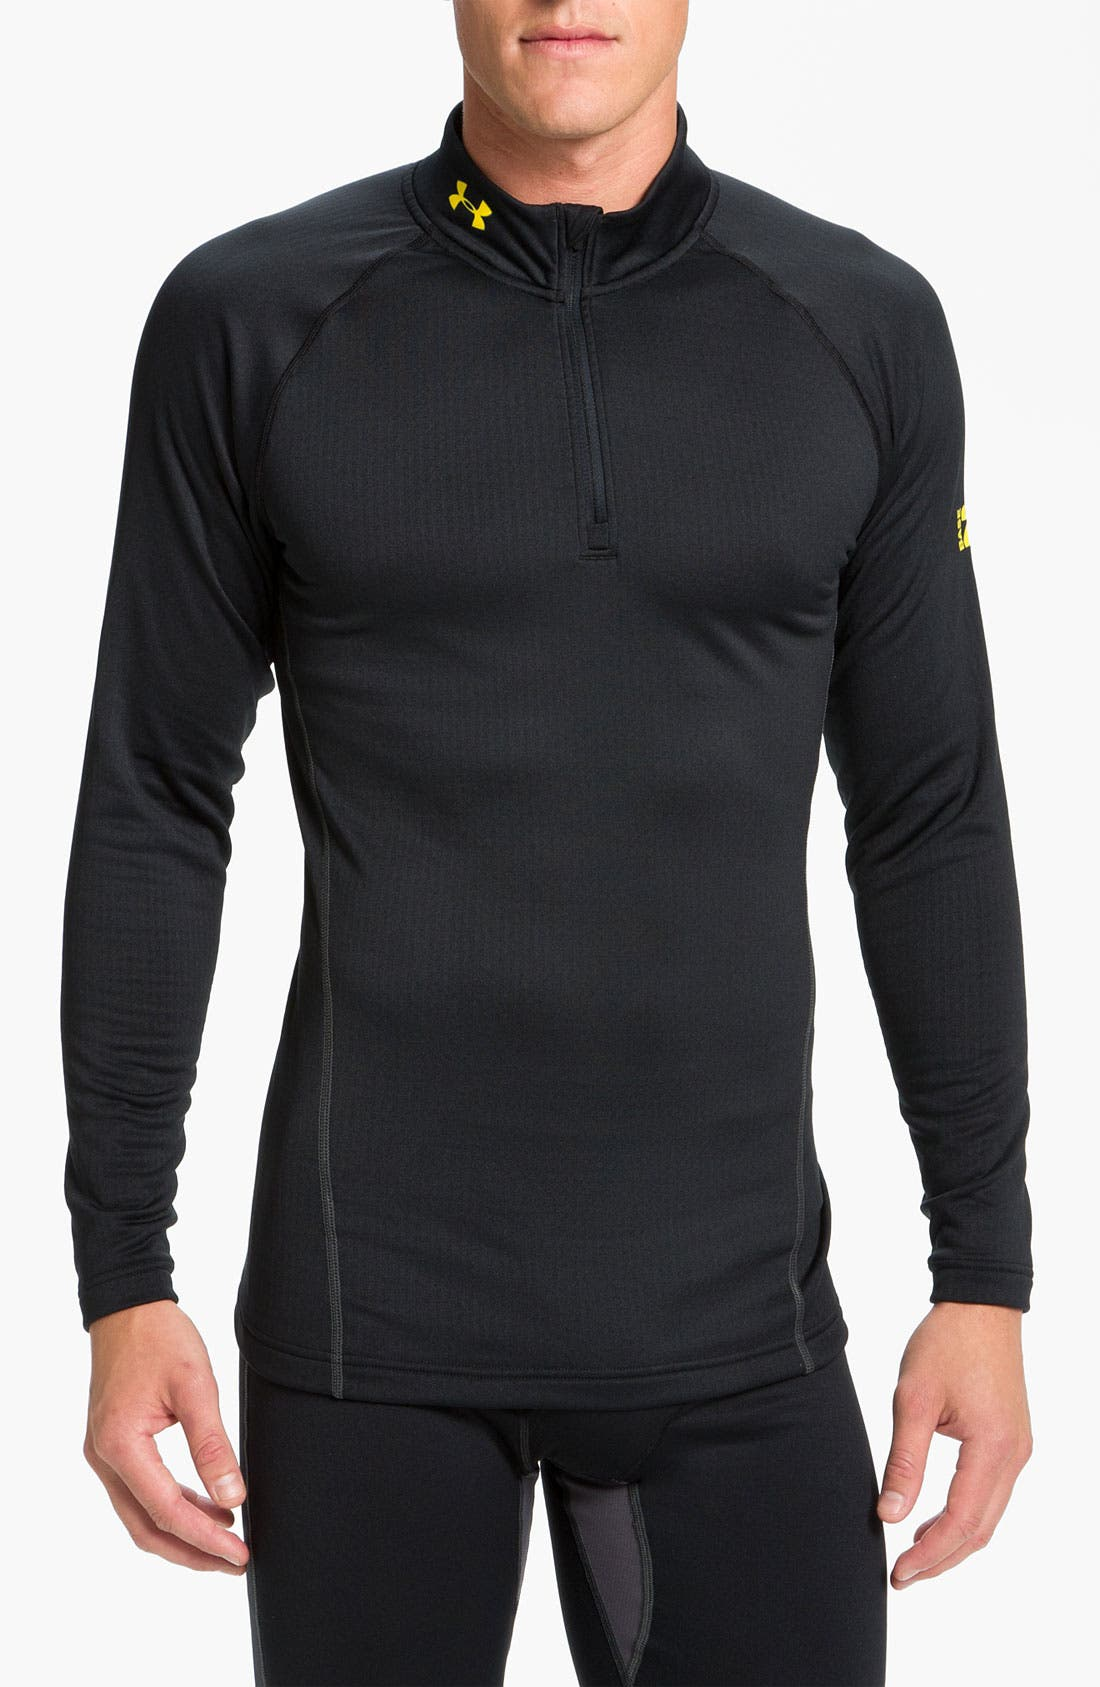 Alternate Image 1 Selected - Under Armour 'Base 2.0' Fitted Quarter Zip Pullover (Online Only)